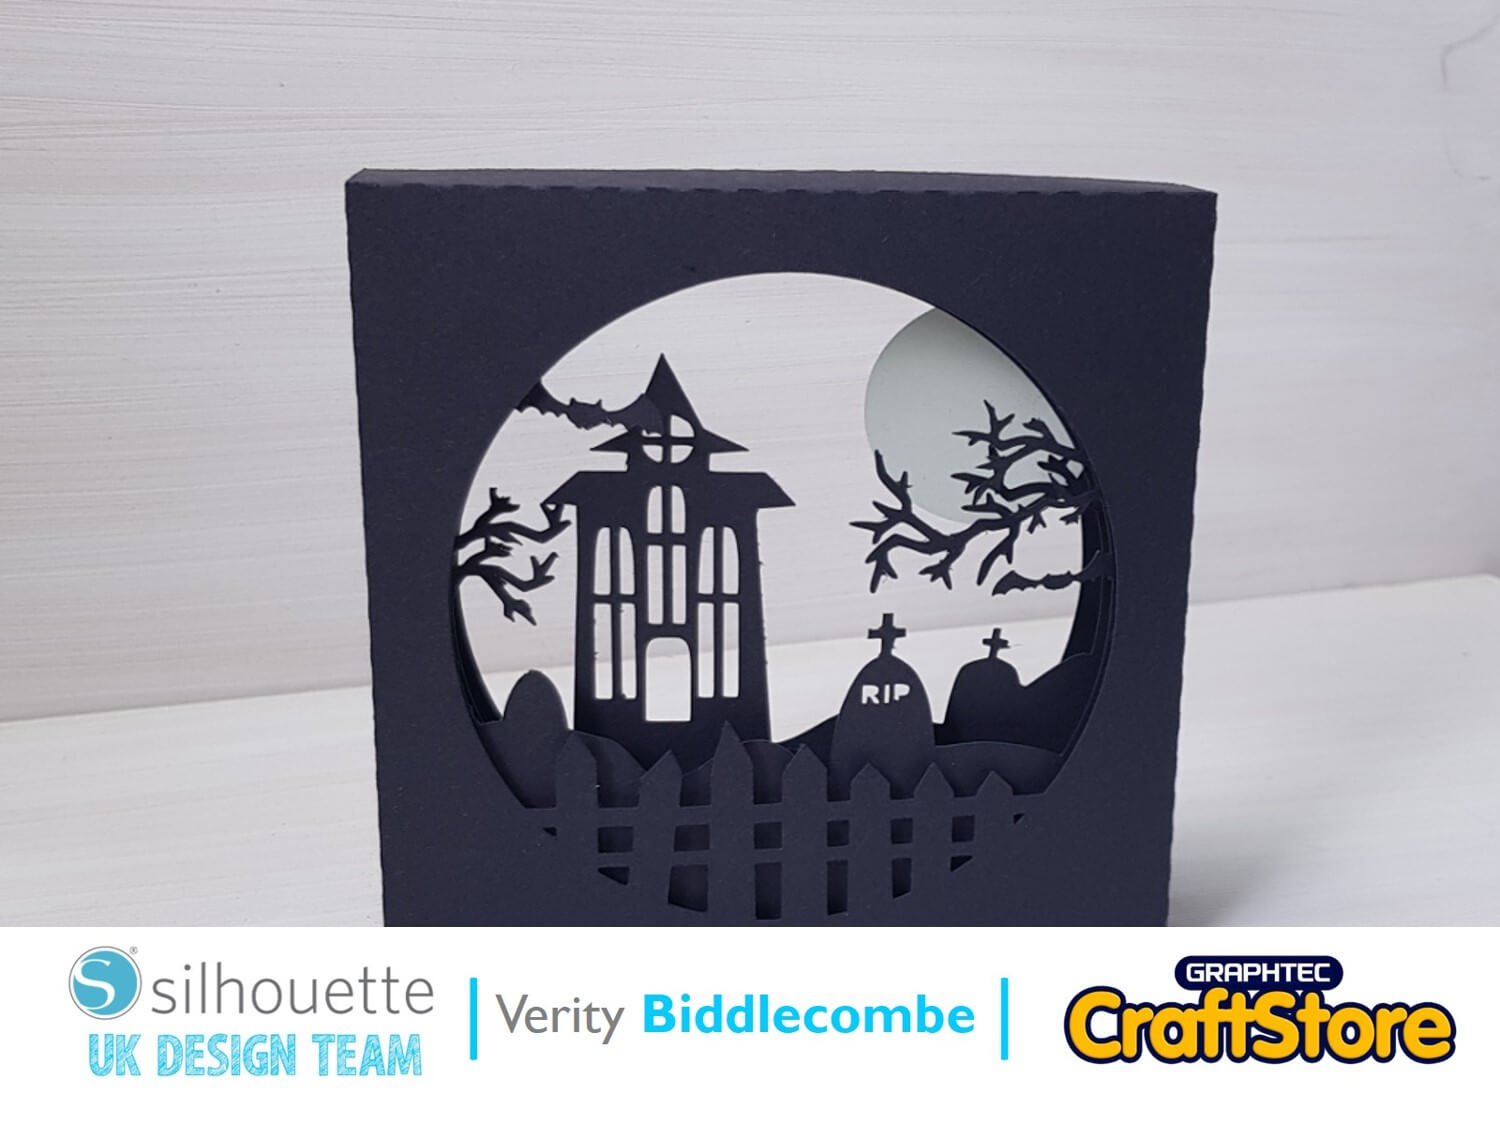 silhouette uk blog - verity biddlecombe - glow-in-the-dark - halloween scene - complete